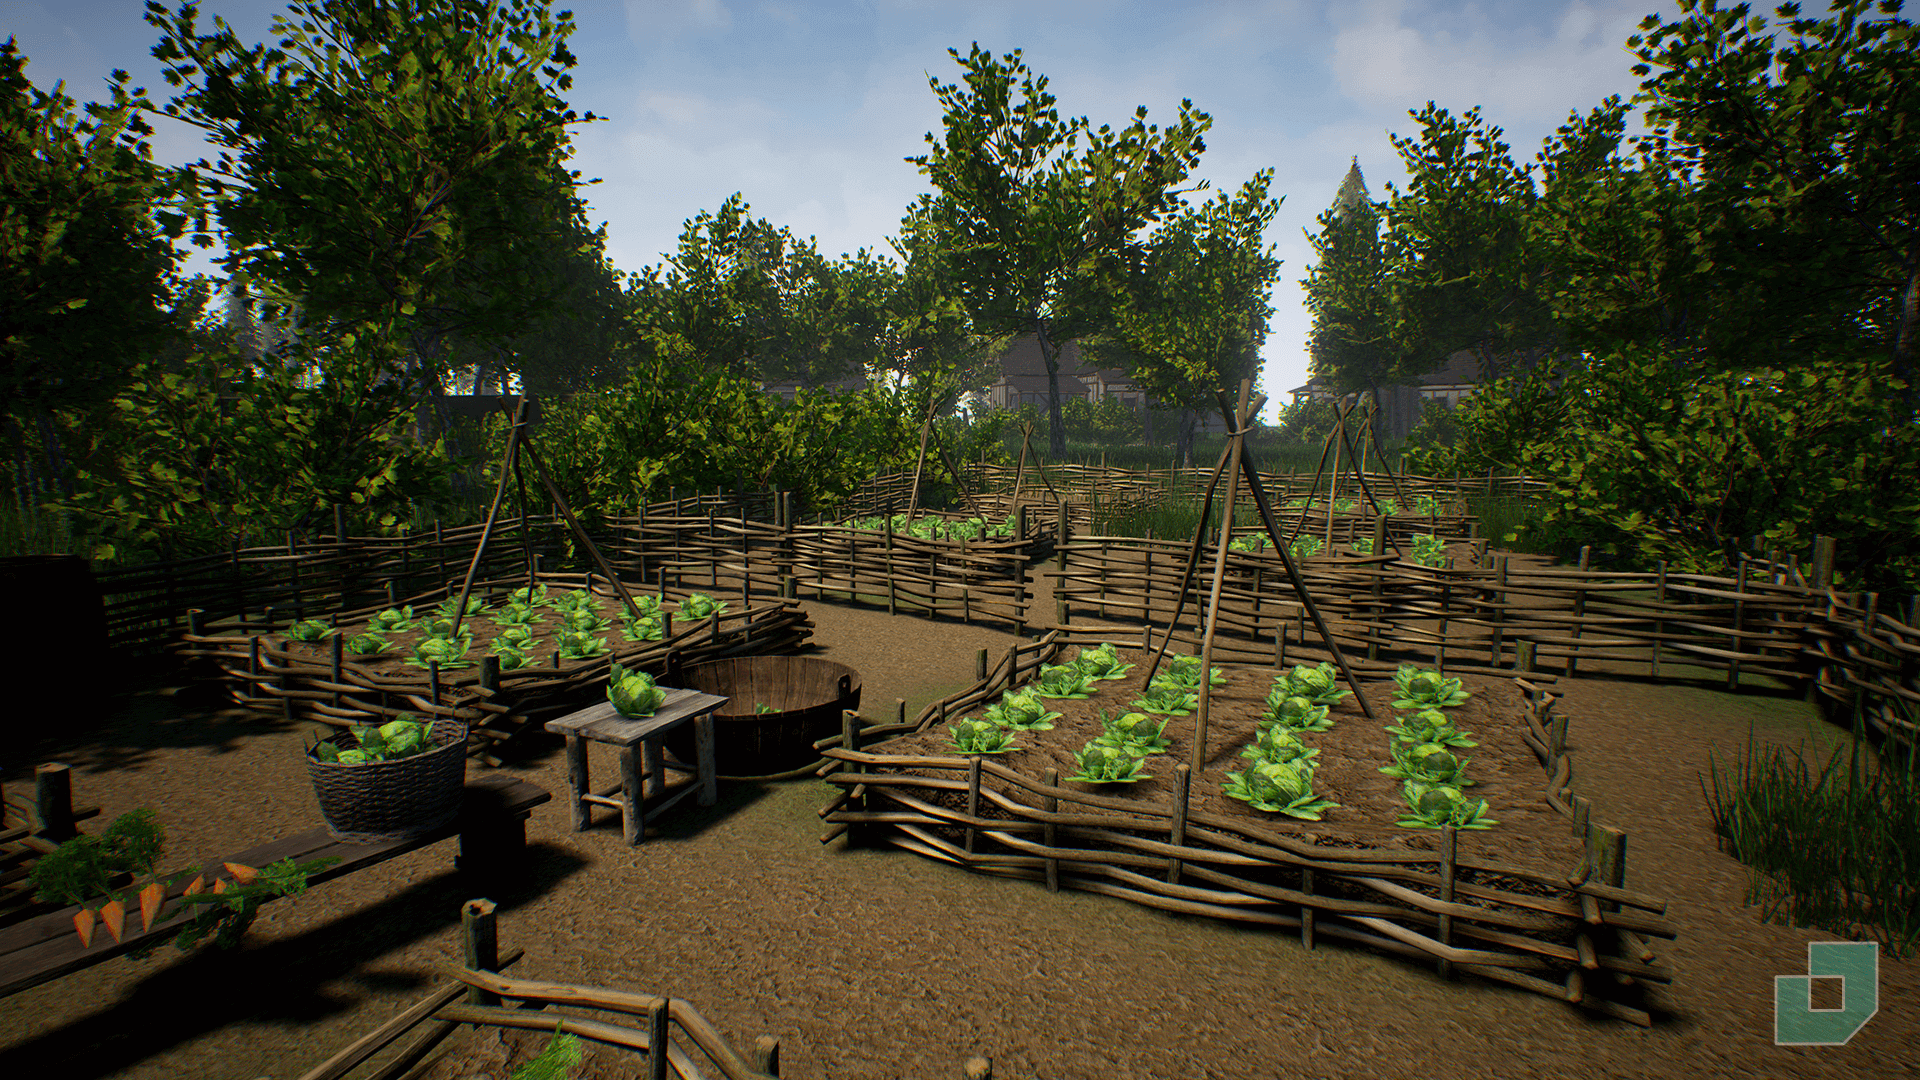 Medieval Town by Dokyo in Environments - UE4 Marketplace